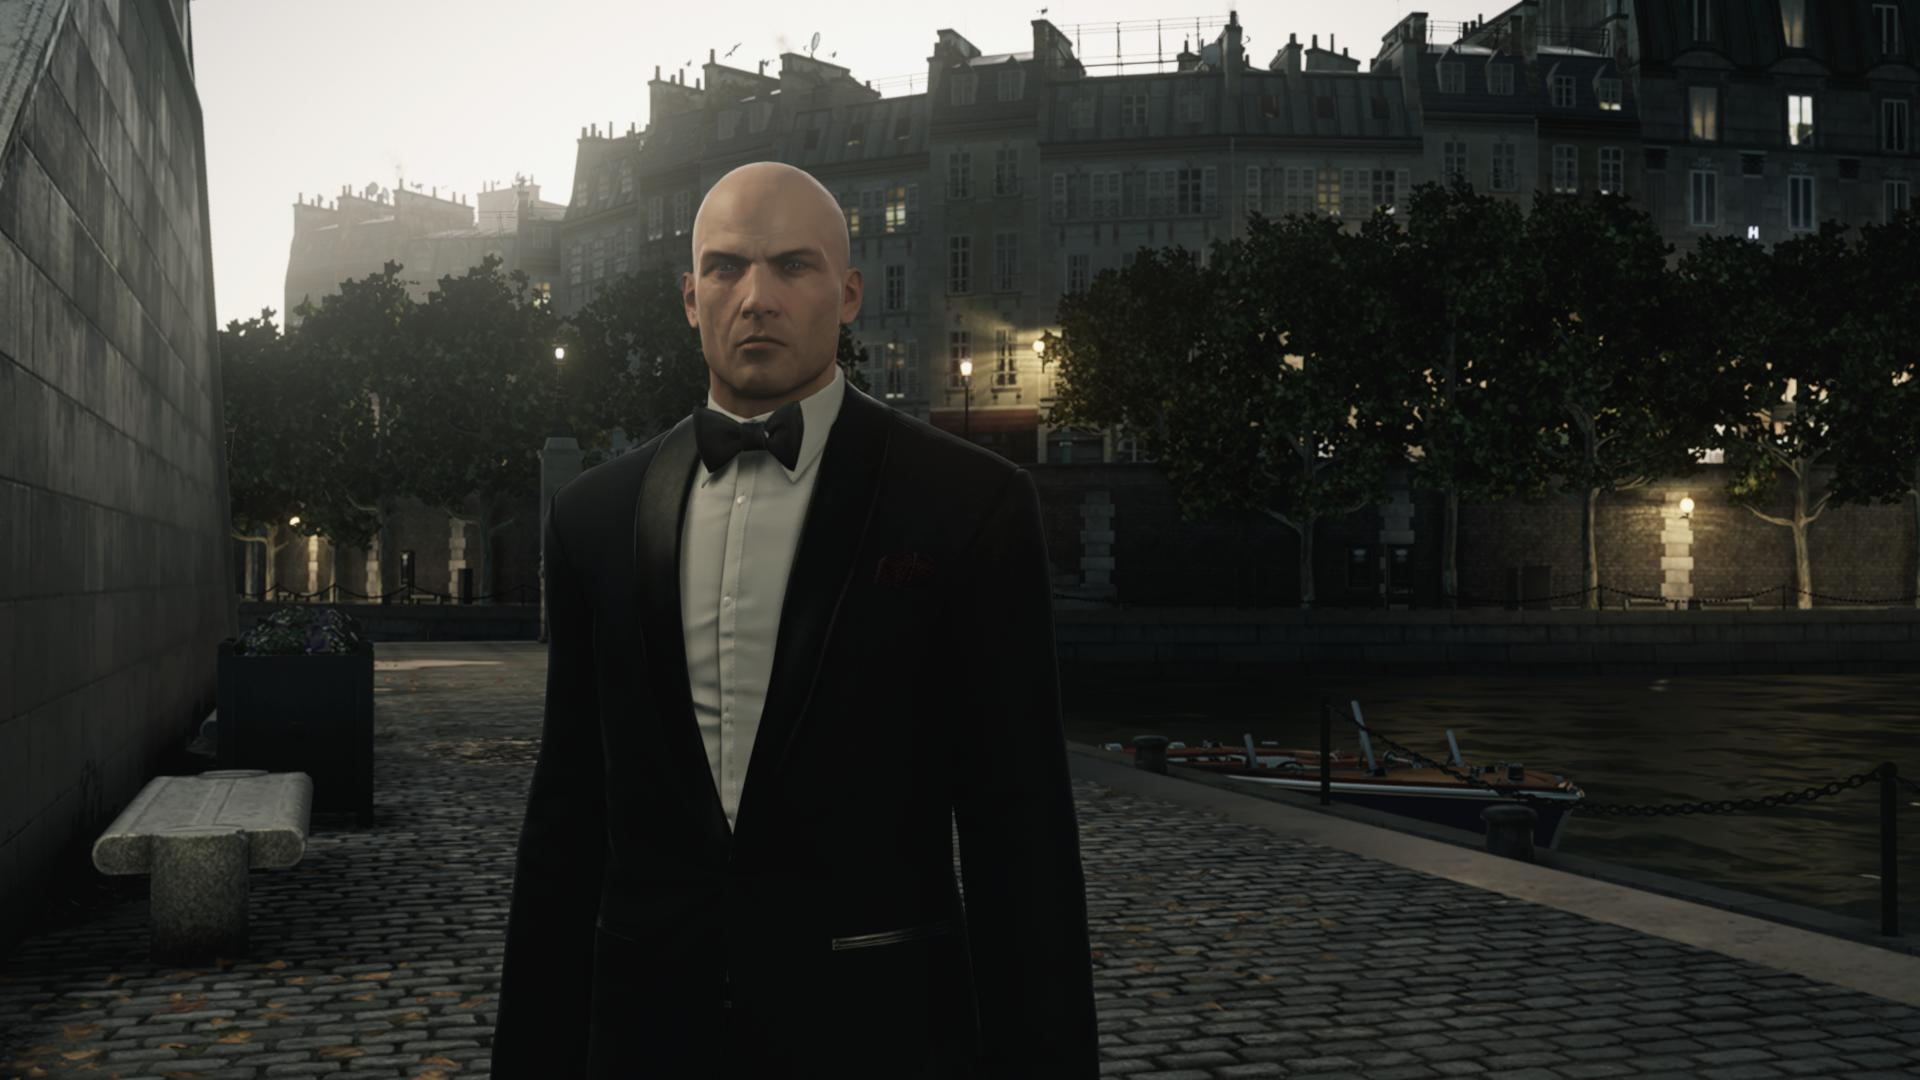 Hitman System new screenshots released